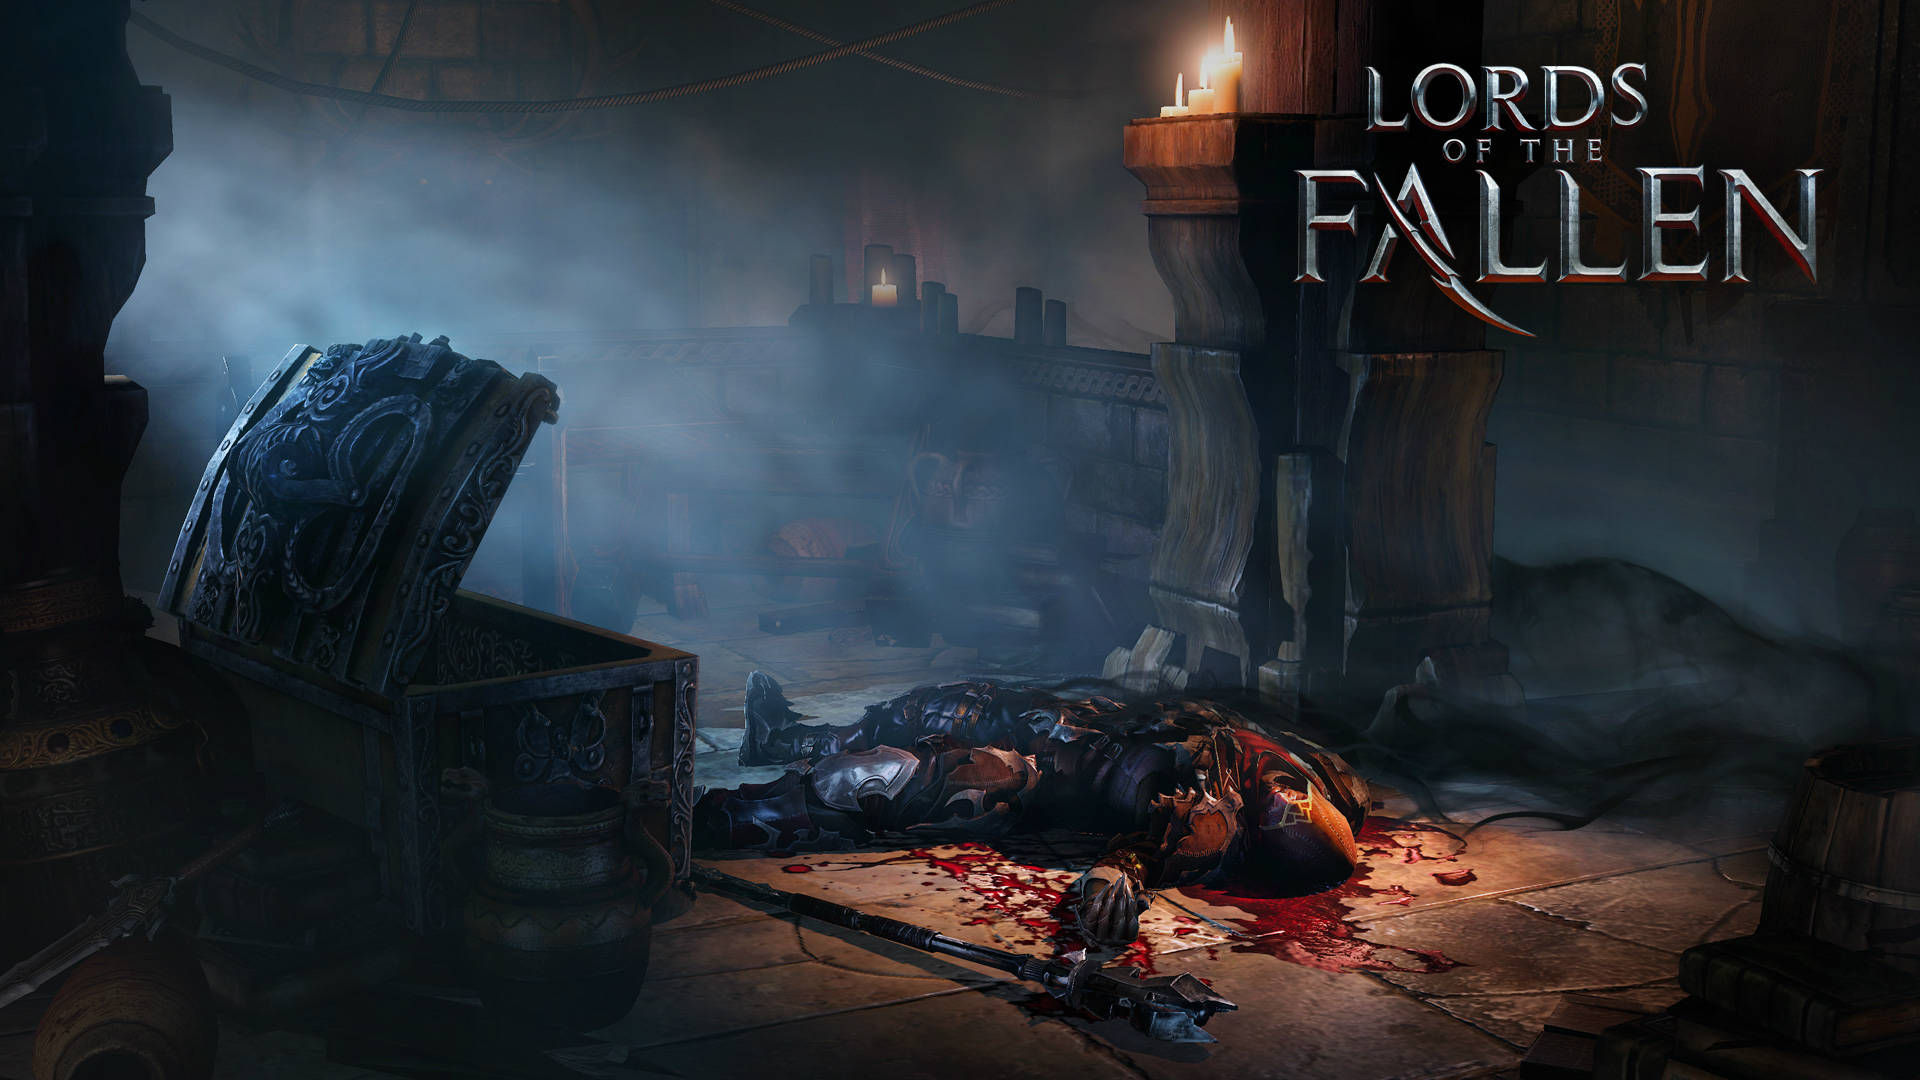 Lords of the Fallen sc...